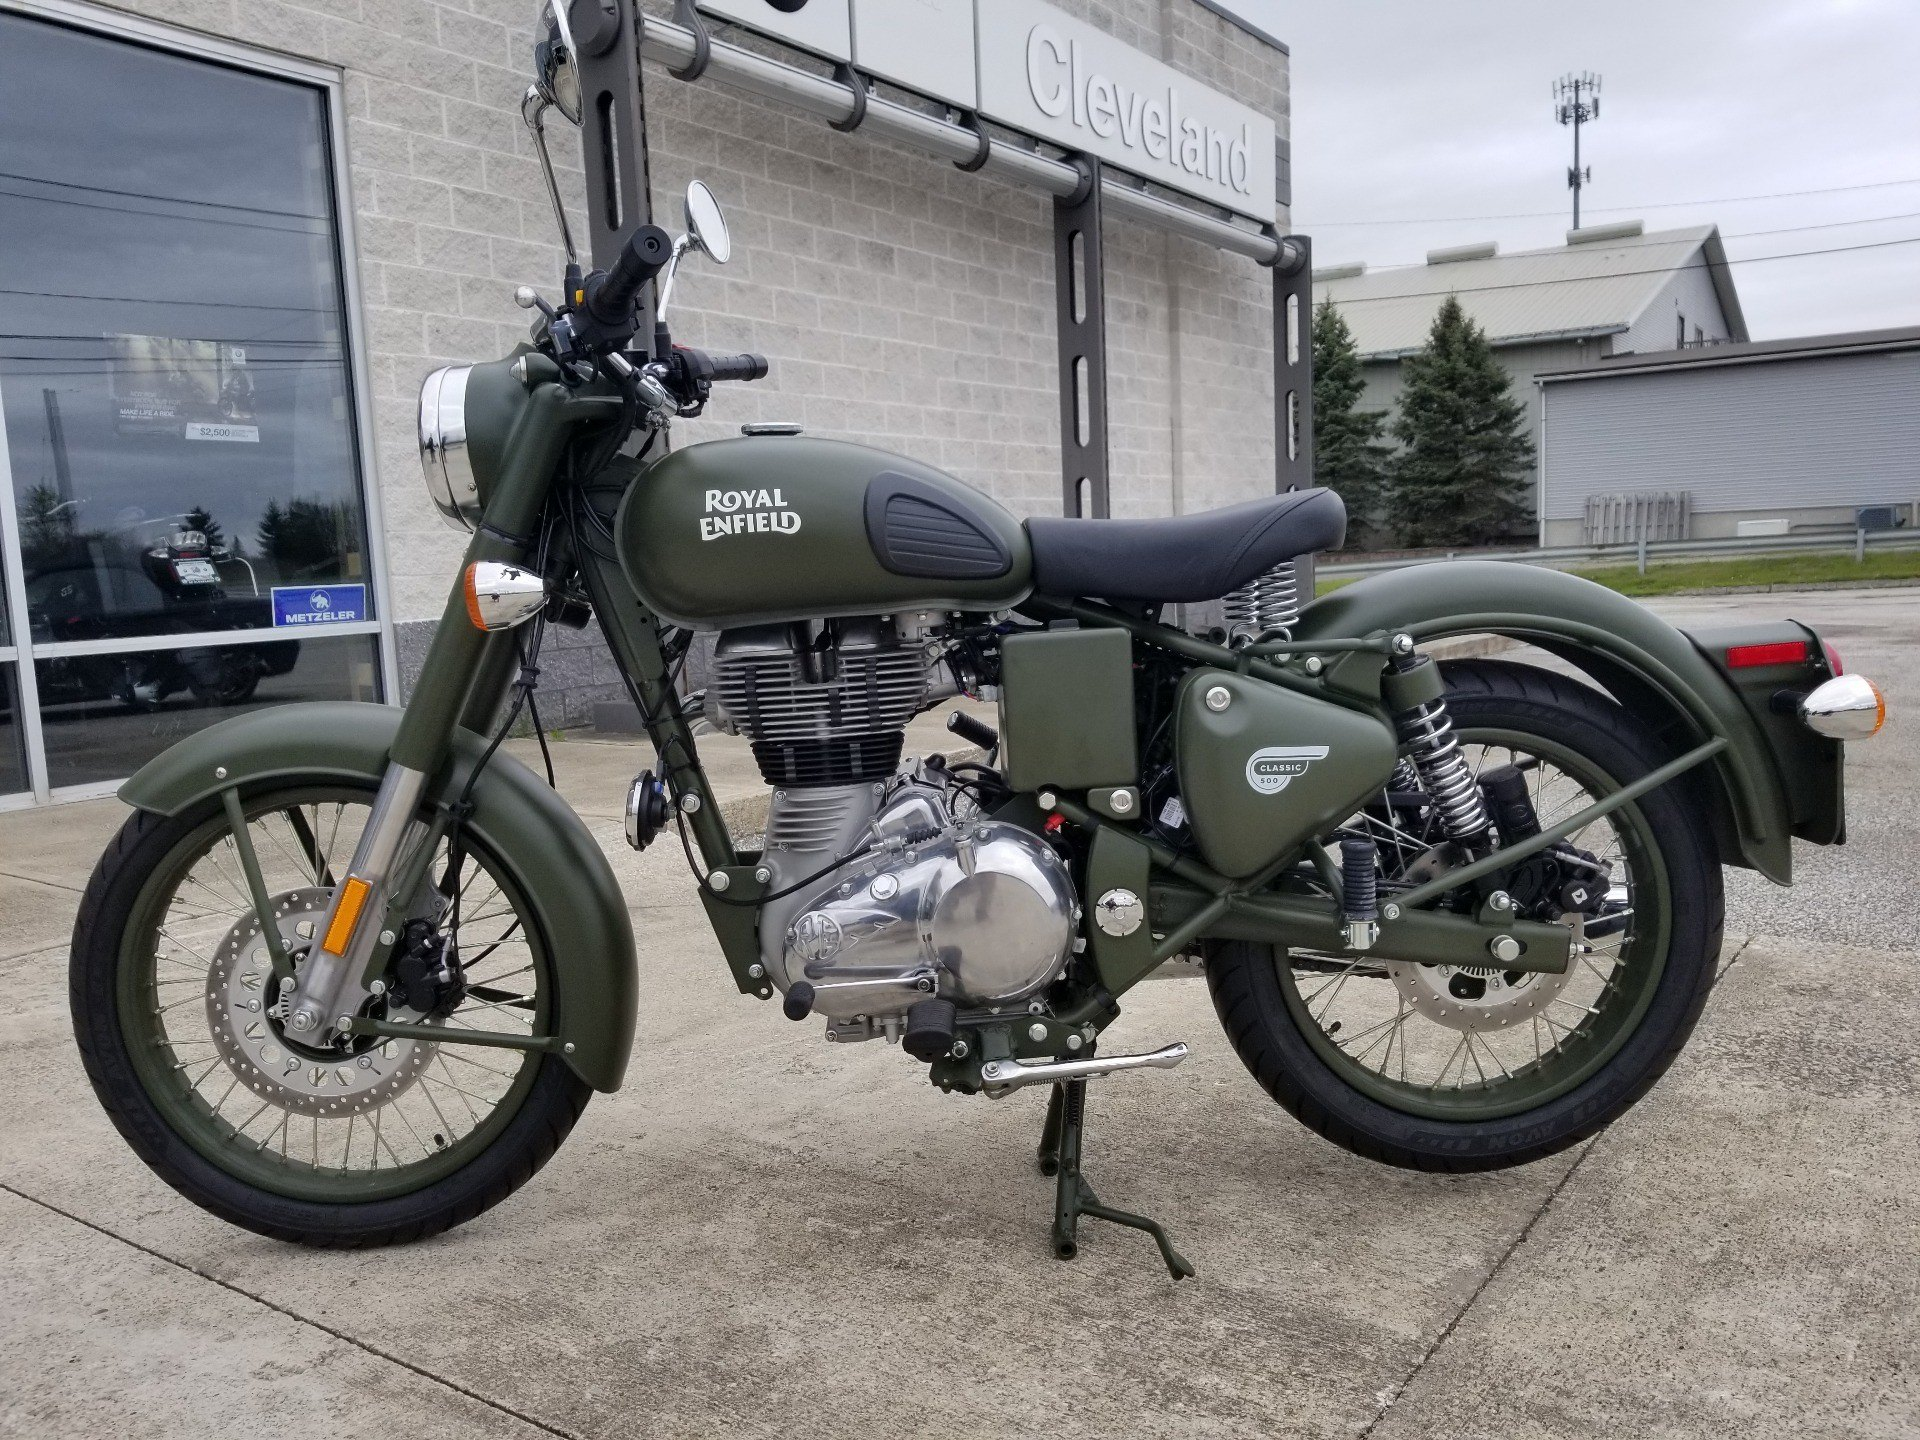 2019 Royal Enfield Classic 500 Battle Green in Aurora, Ohio - Photo 2